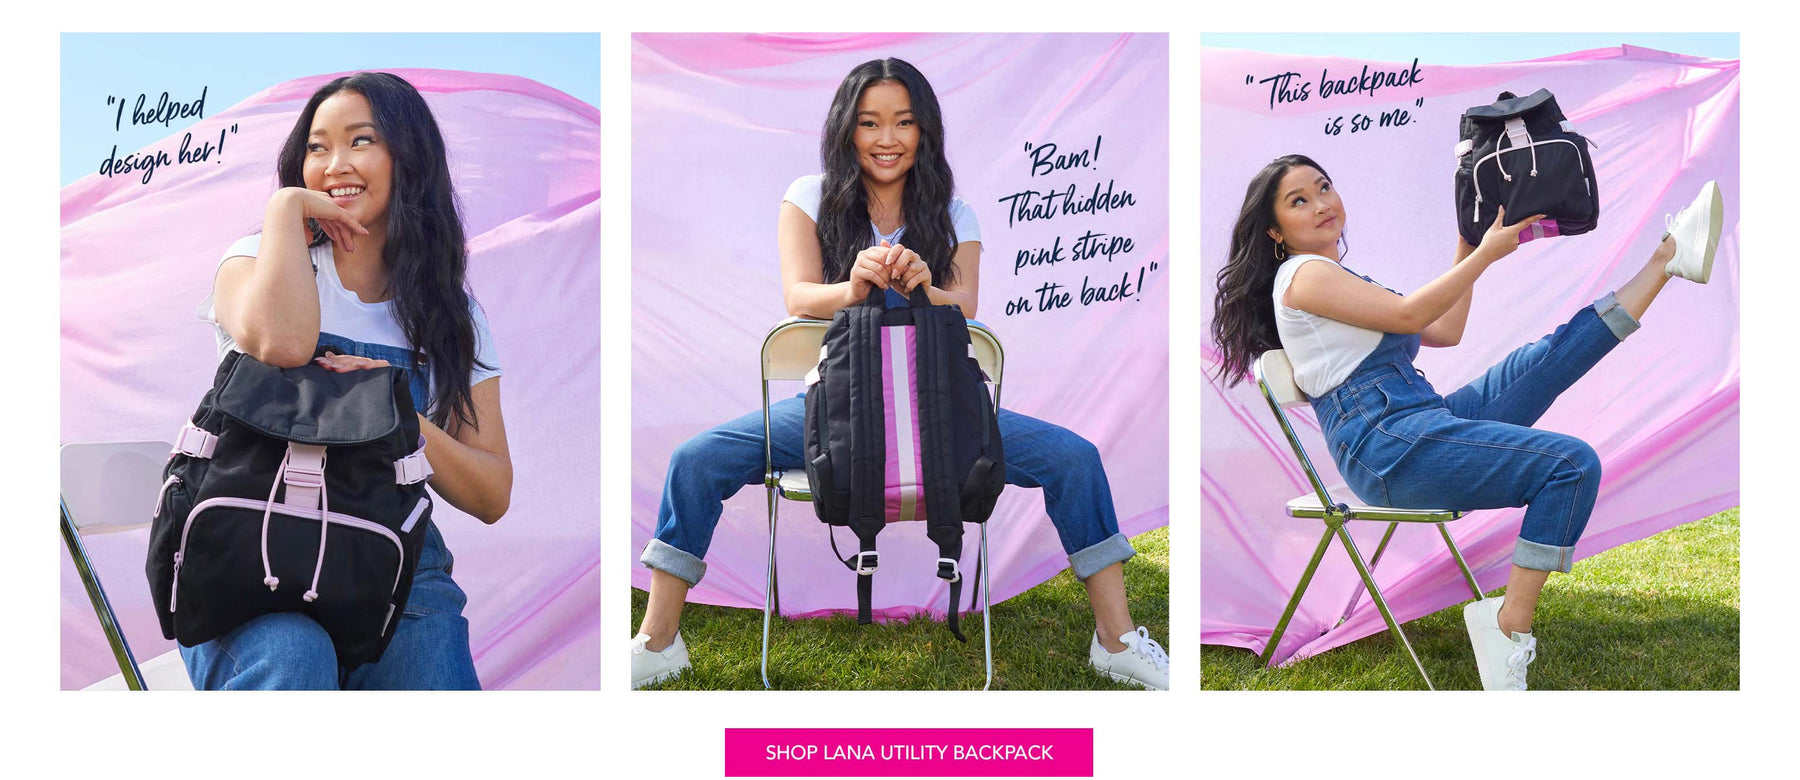 """I helped design her!""  ""This backpack is so me.""  ""Bam! That hidden pink stripe on the back!""   Shop Lana Utility Backpack"